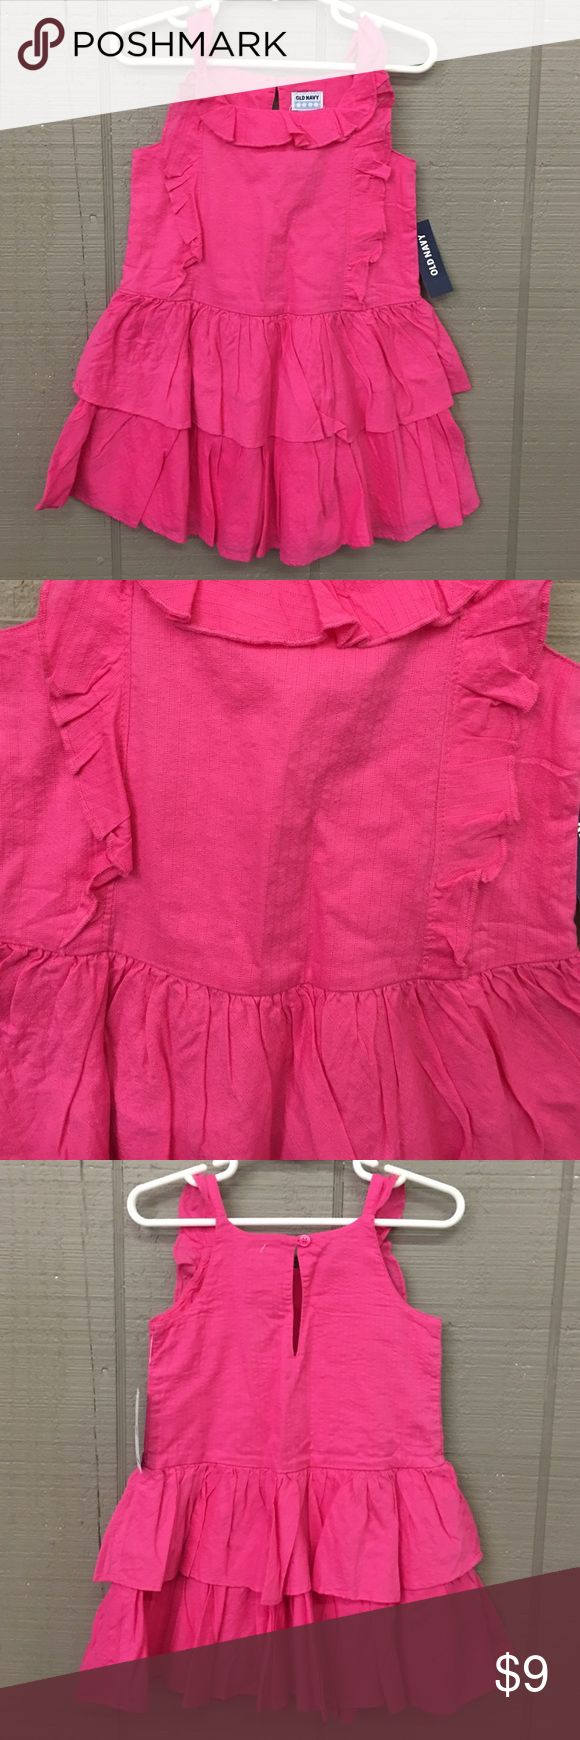 Old navy cotton pink dress Old navy cotton pink dress Old Navy Dresses Casual